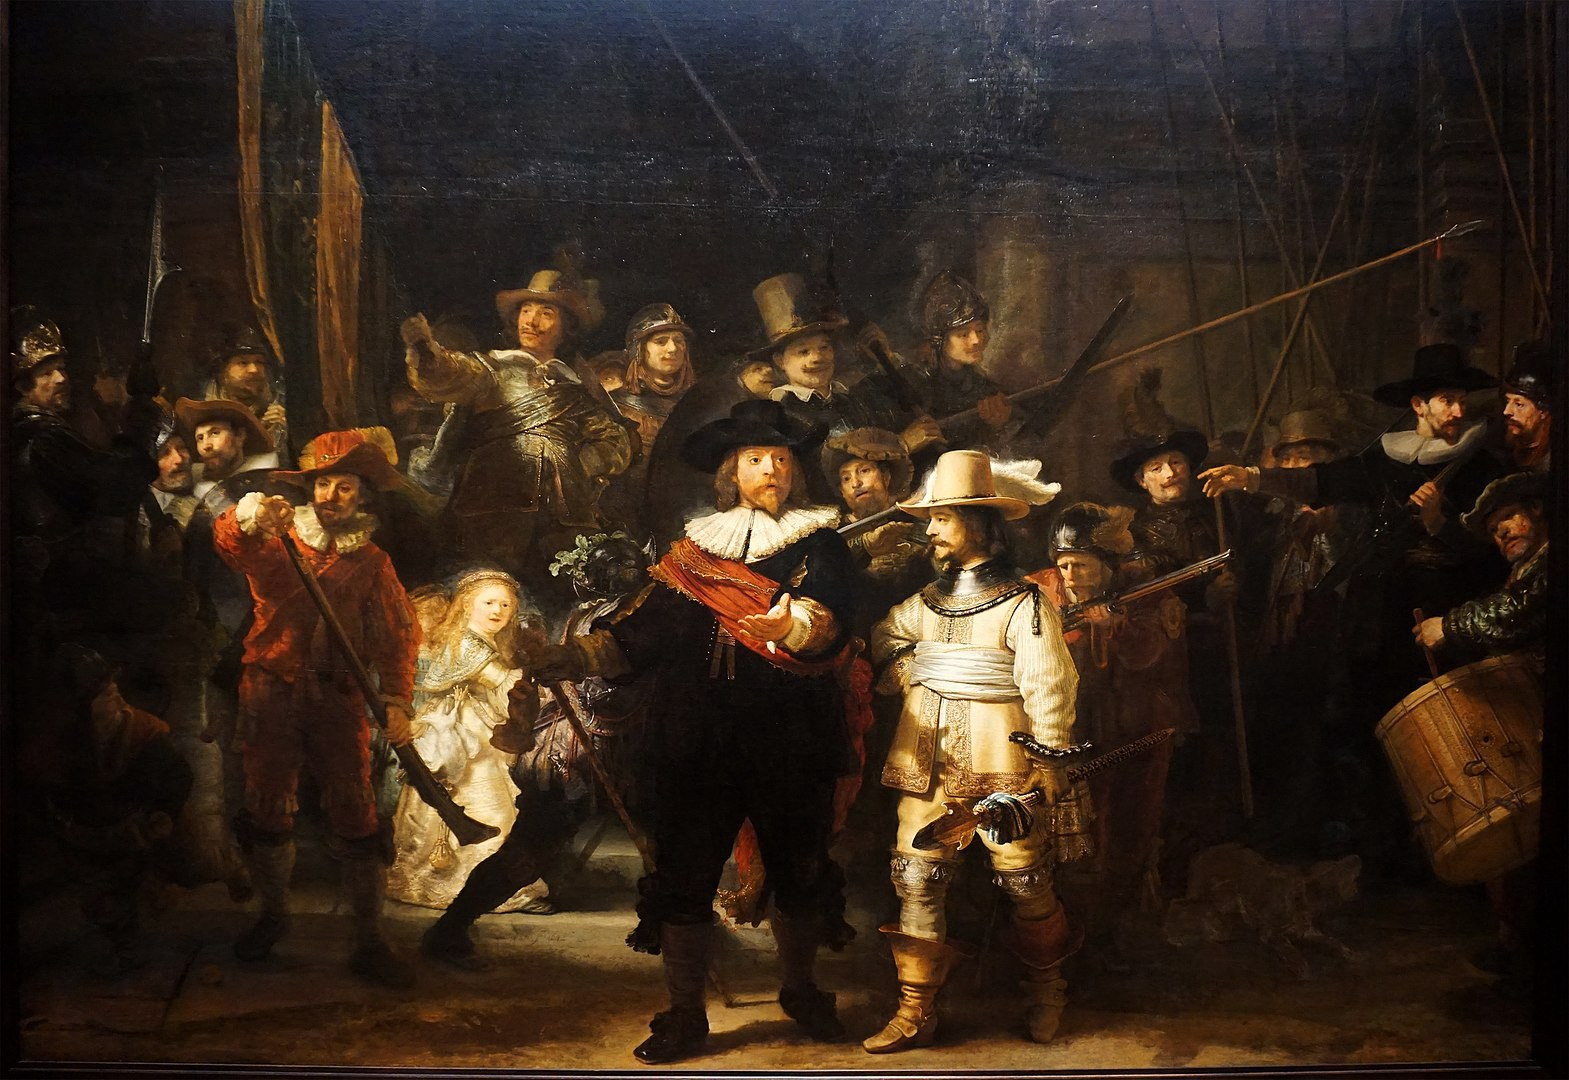 The Night Watch (painting) by Rembrandt